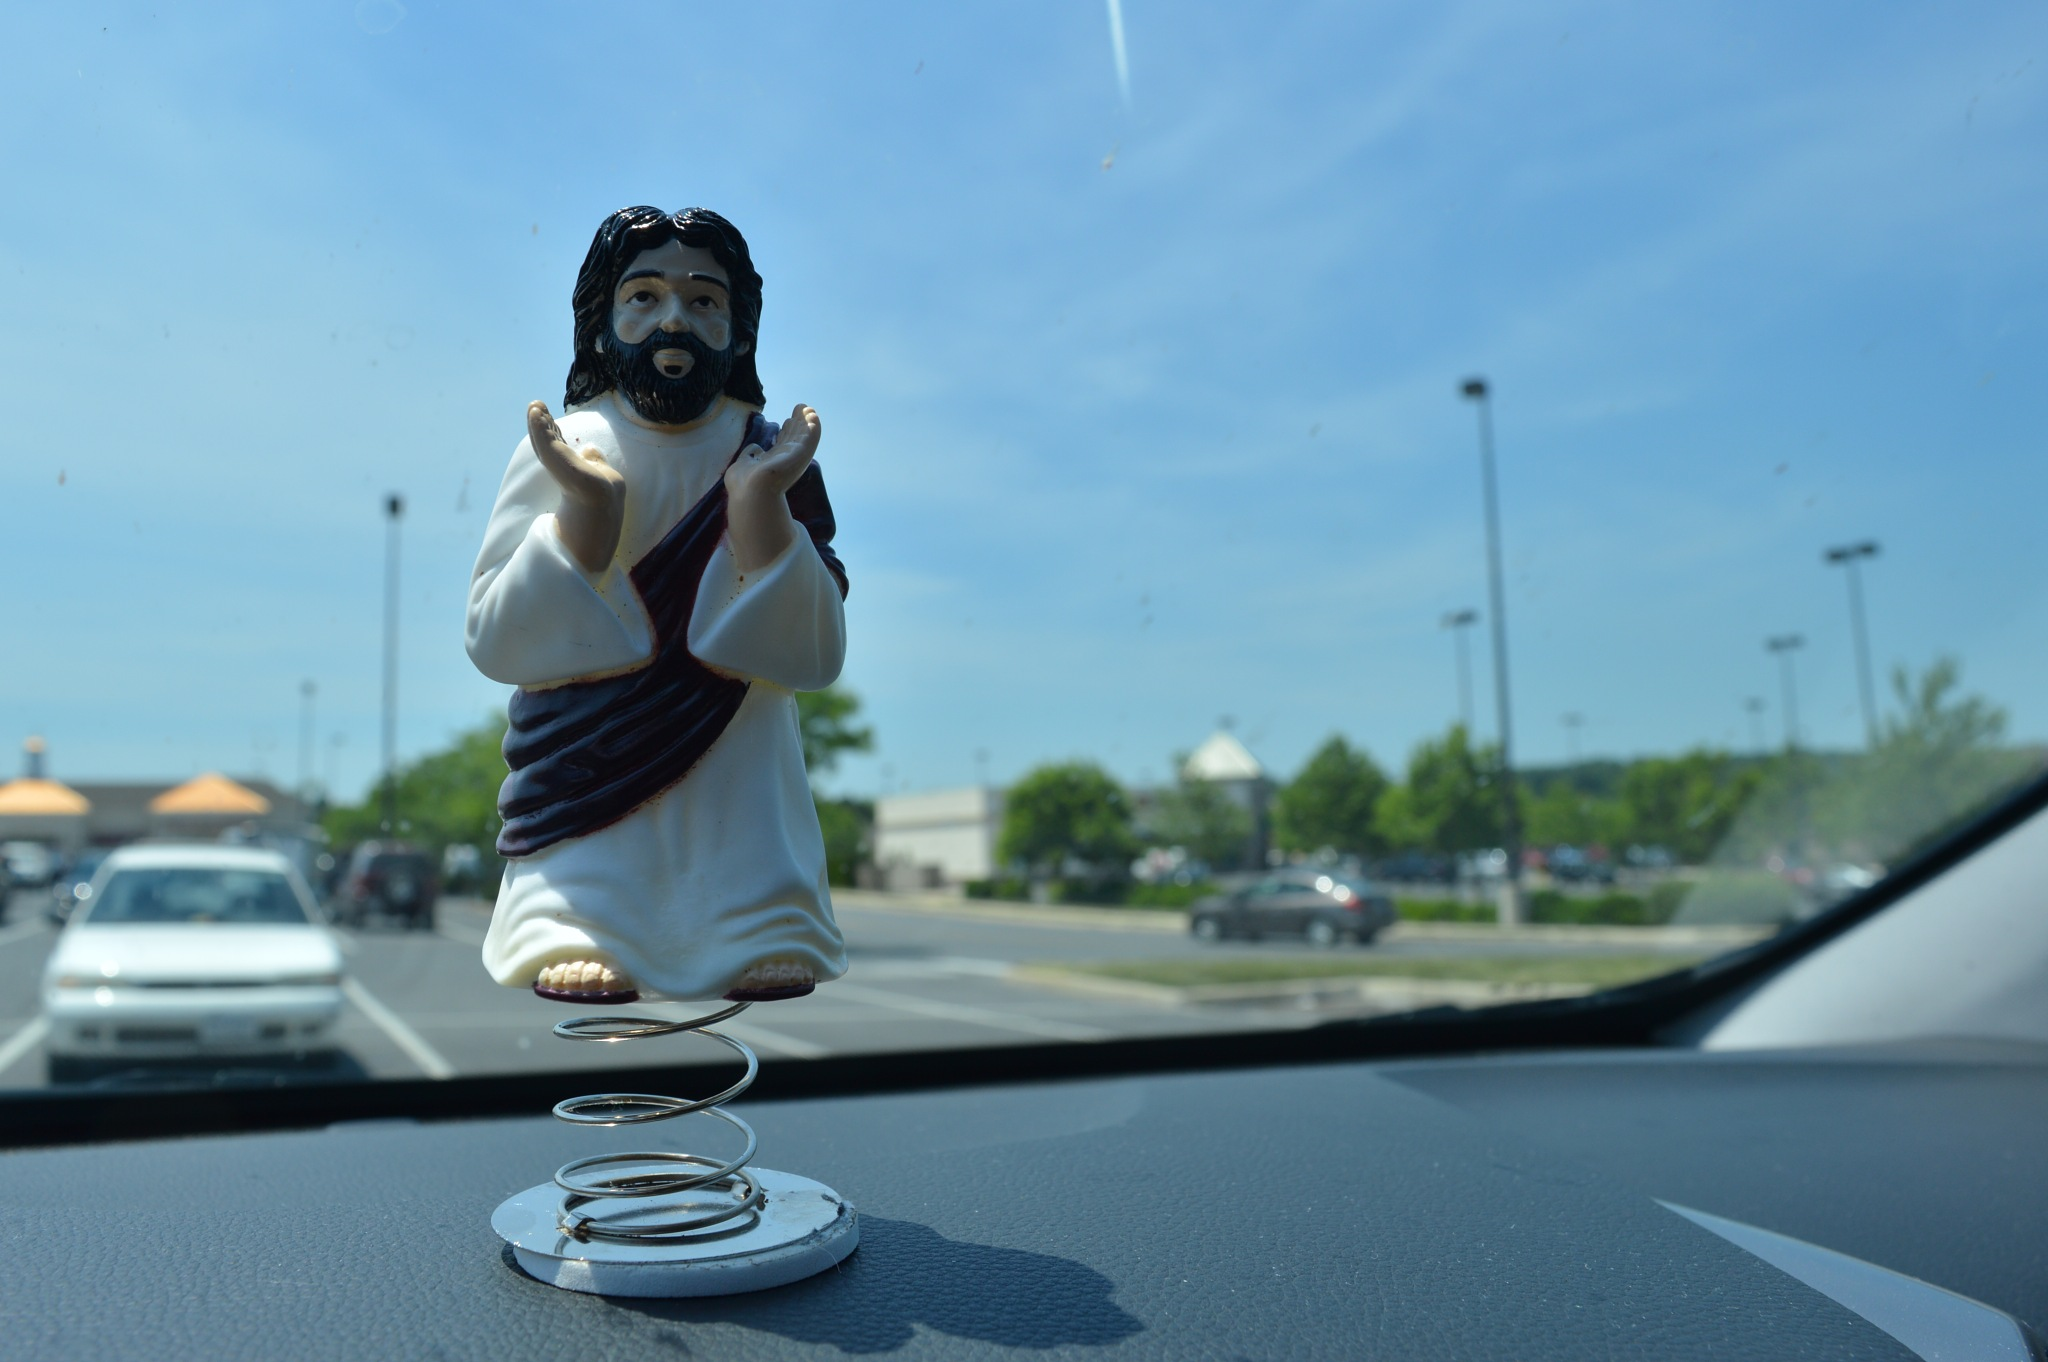 Dashboard Jesus by kookmutsen.com